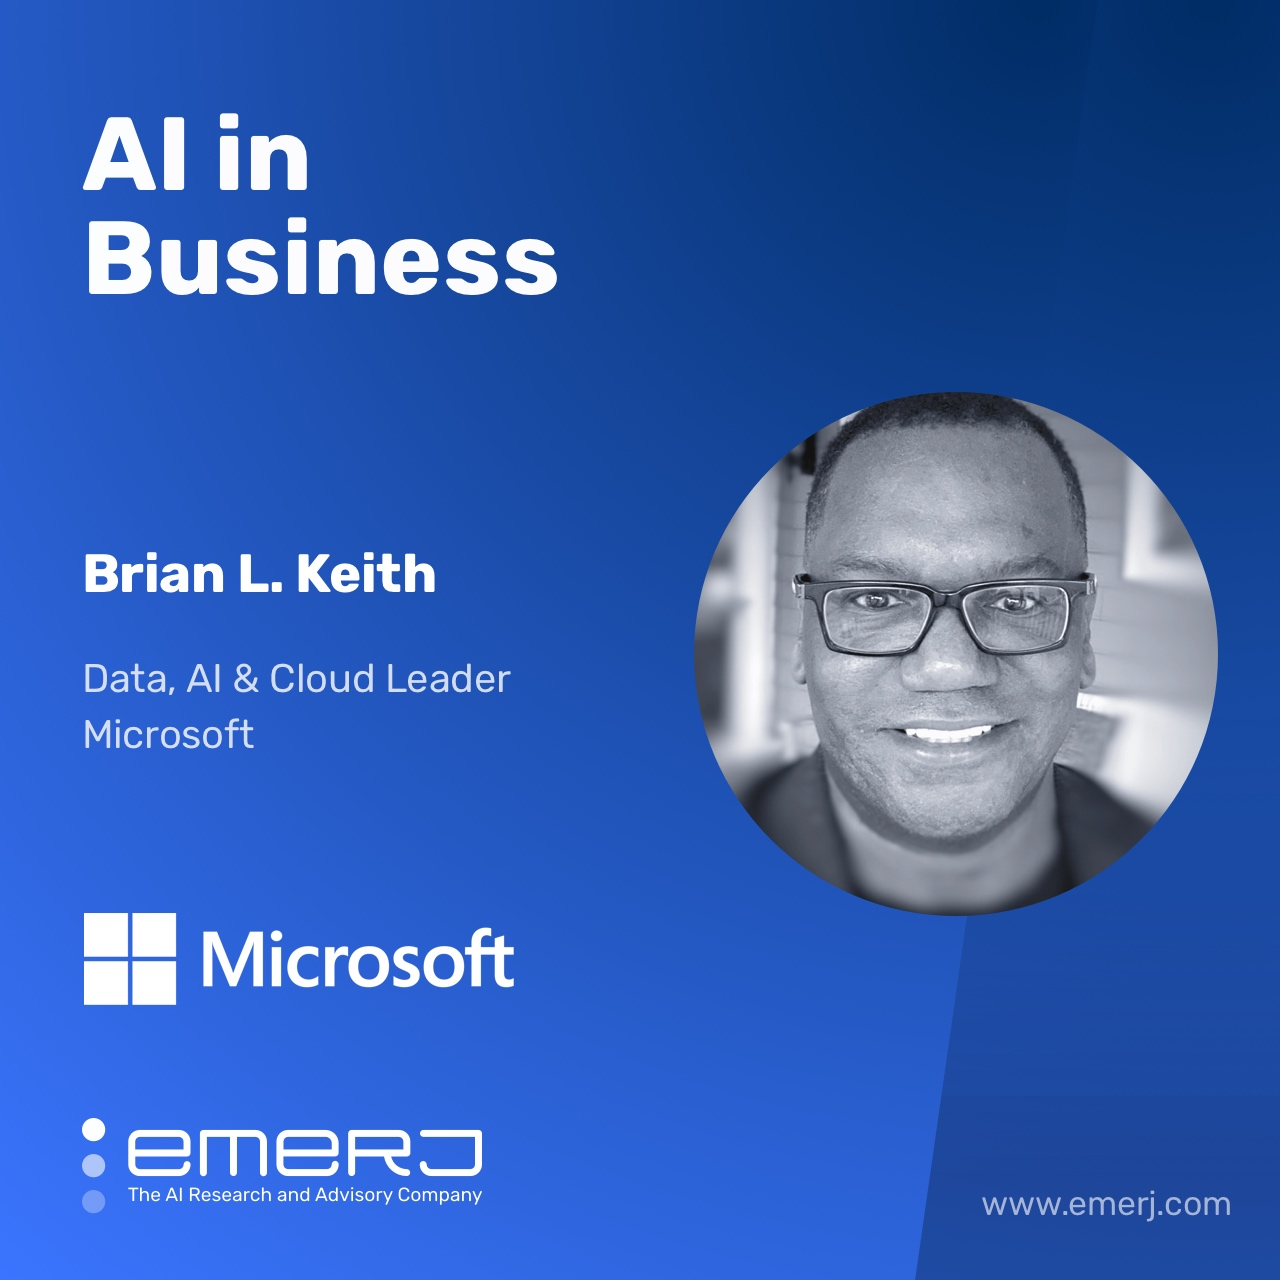 Avoiding Technical Debt and Adopting AI the Right Way - with Brian L. Keith of Microsoft